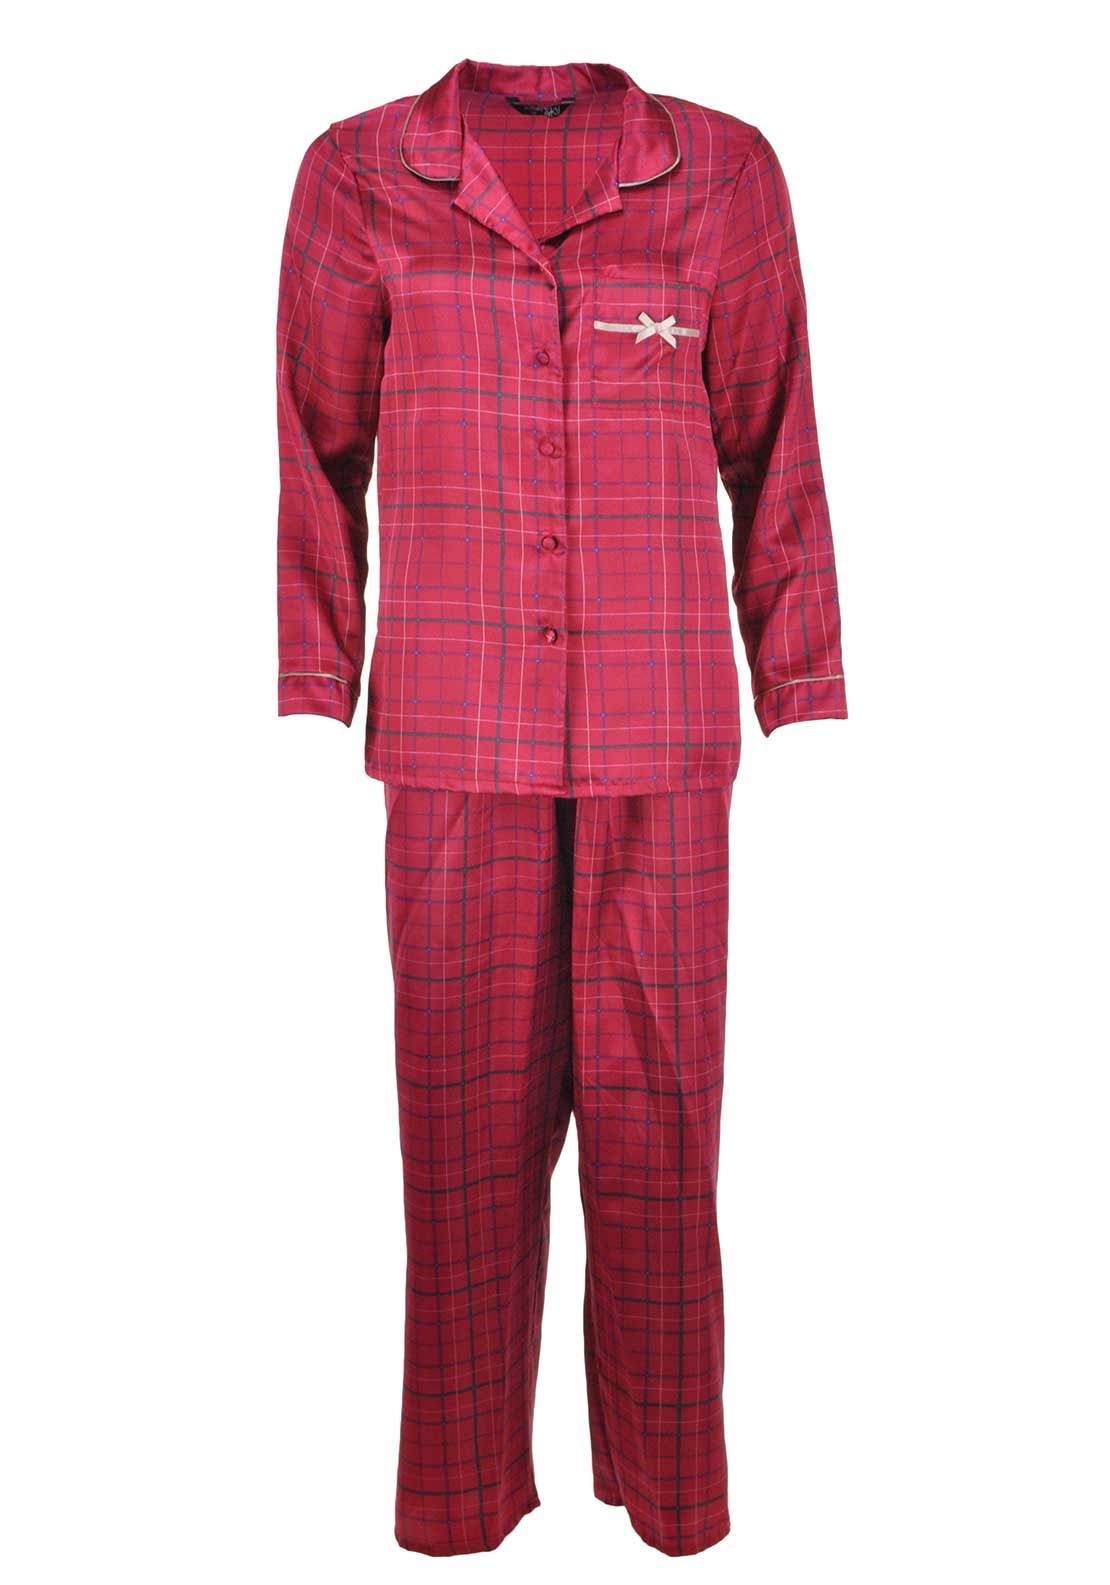 Indigo Sky Checked Pyjama Set, Red